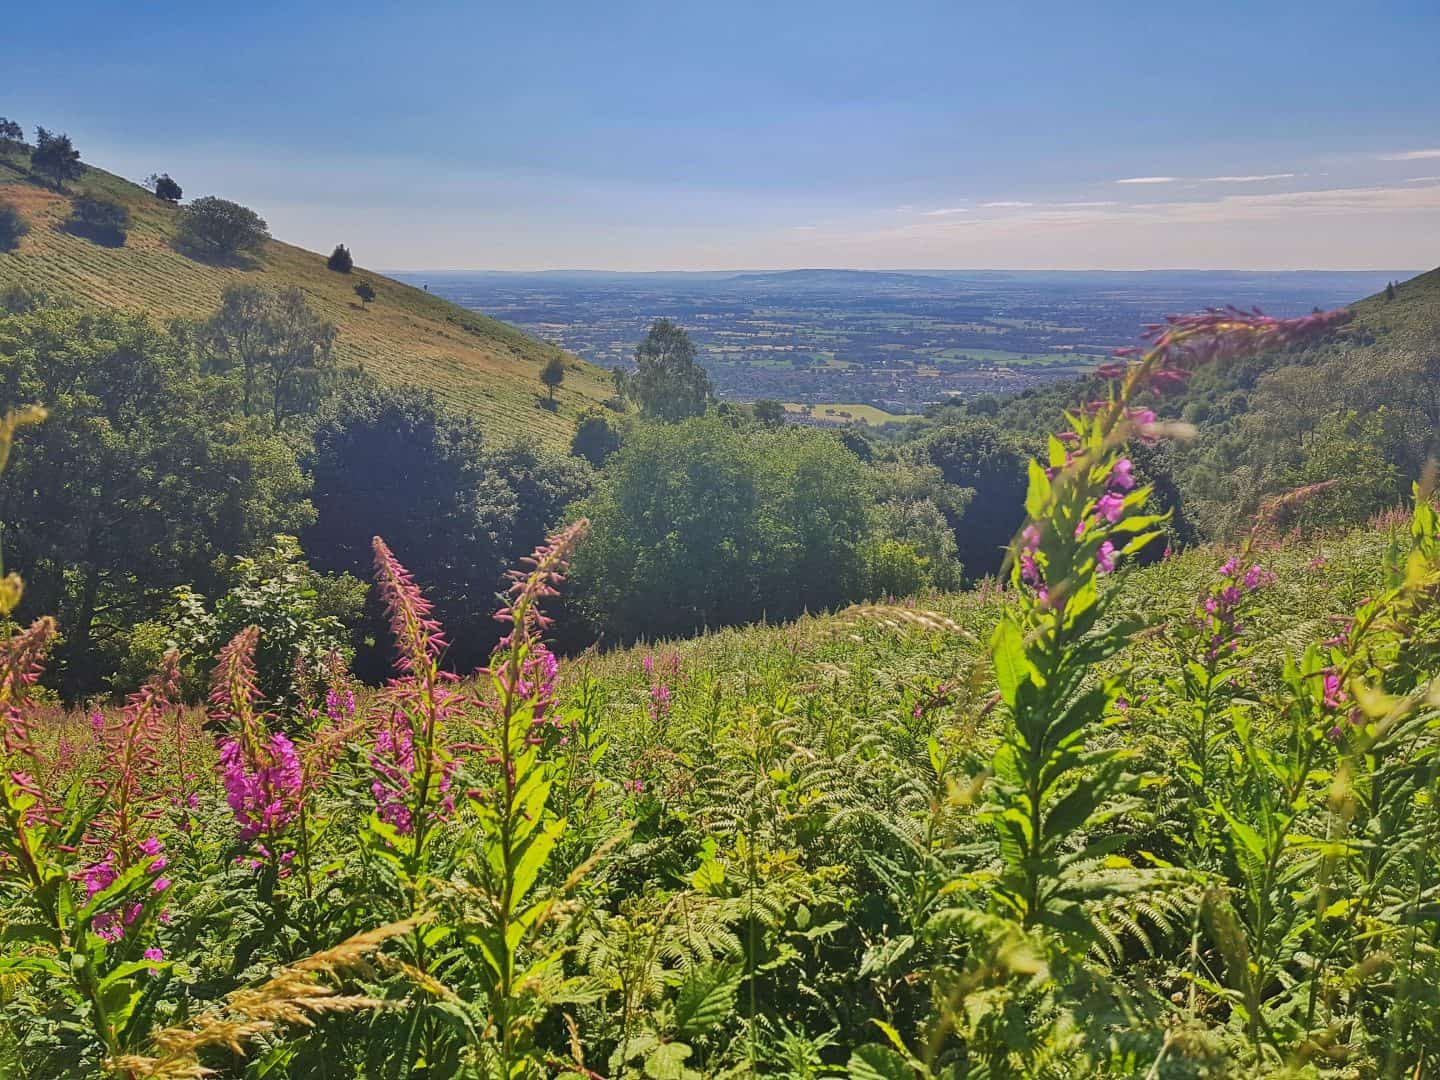 Pink flowers in the foreground with hillsides and a view across Worcestershire in the background